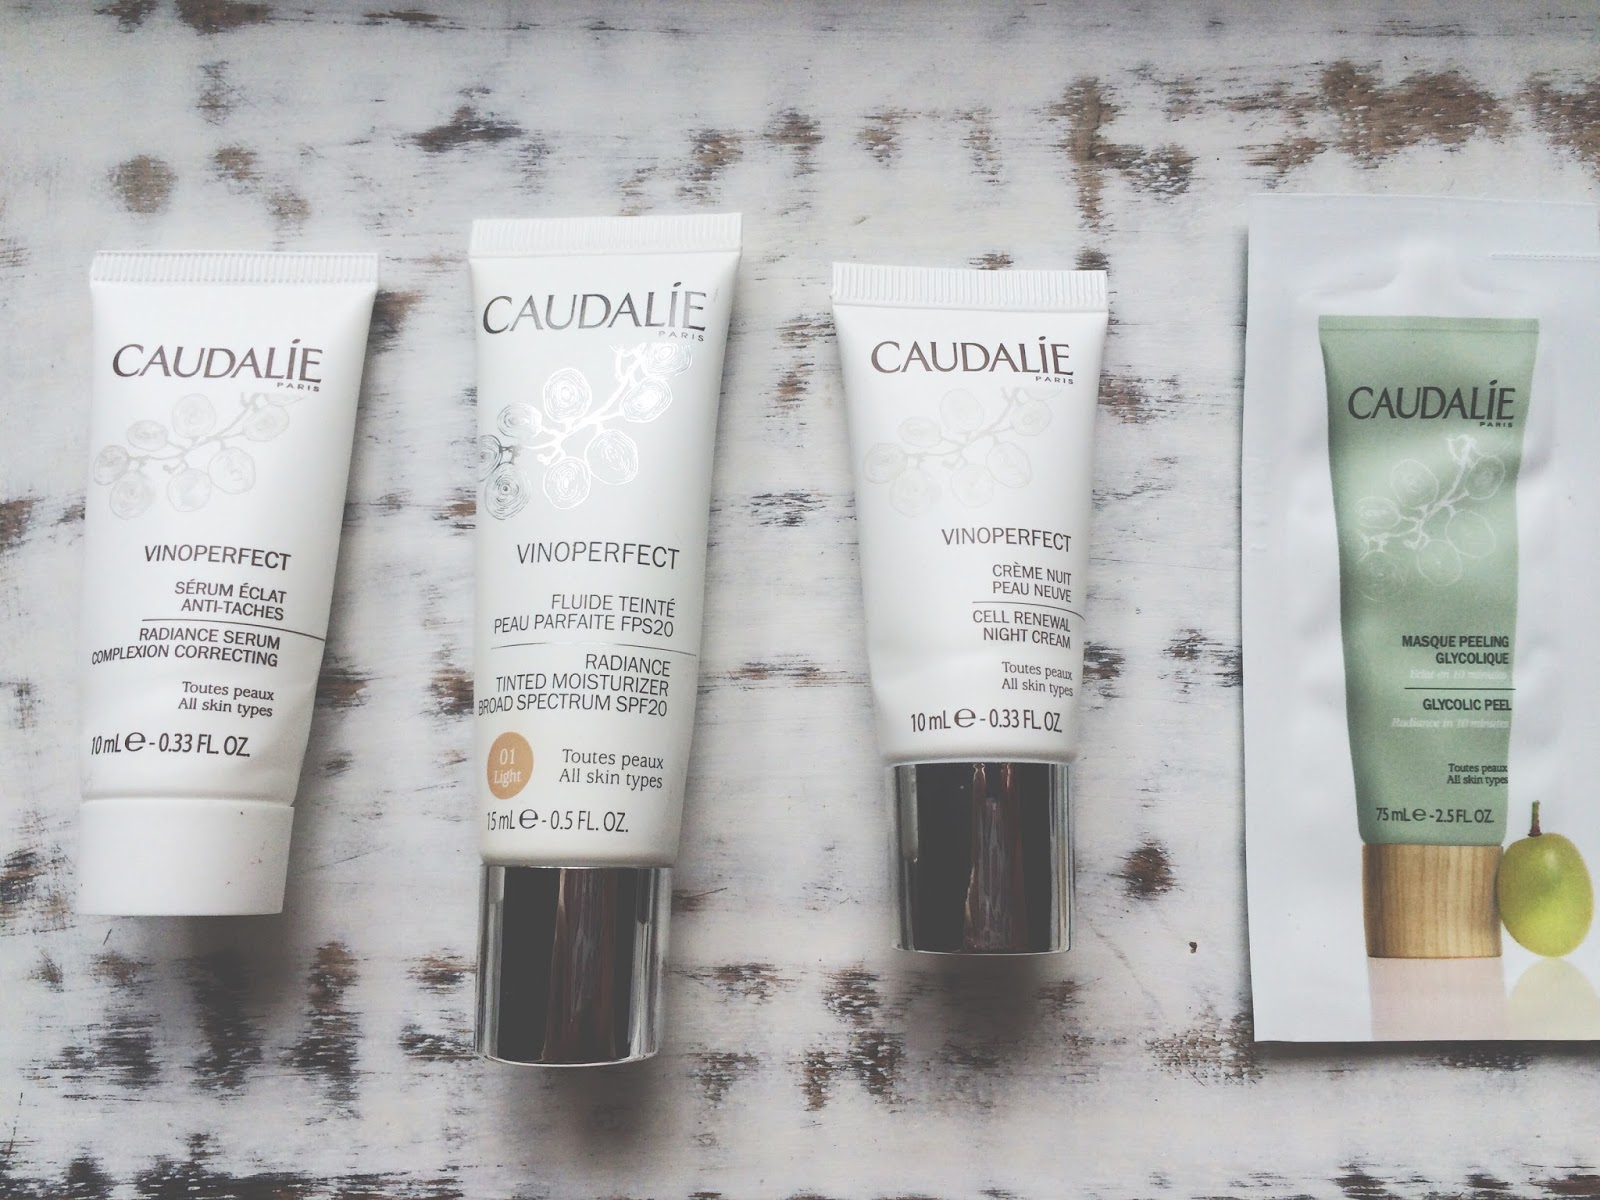 The contents of my Caudalie Vinoperfect box